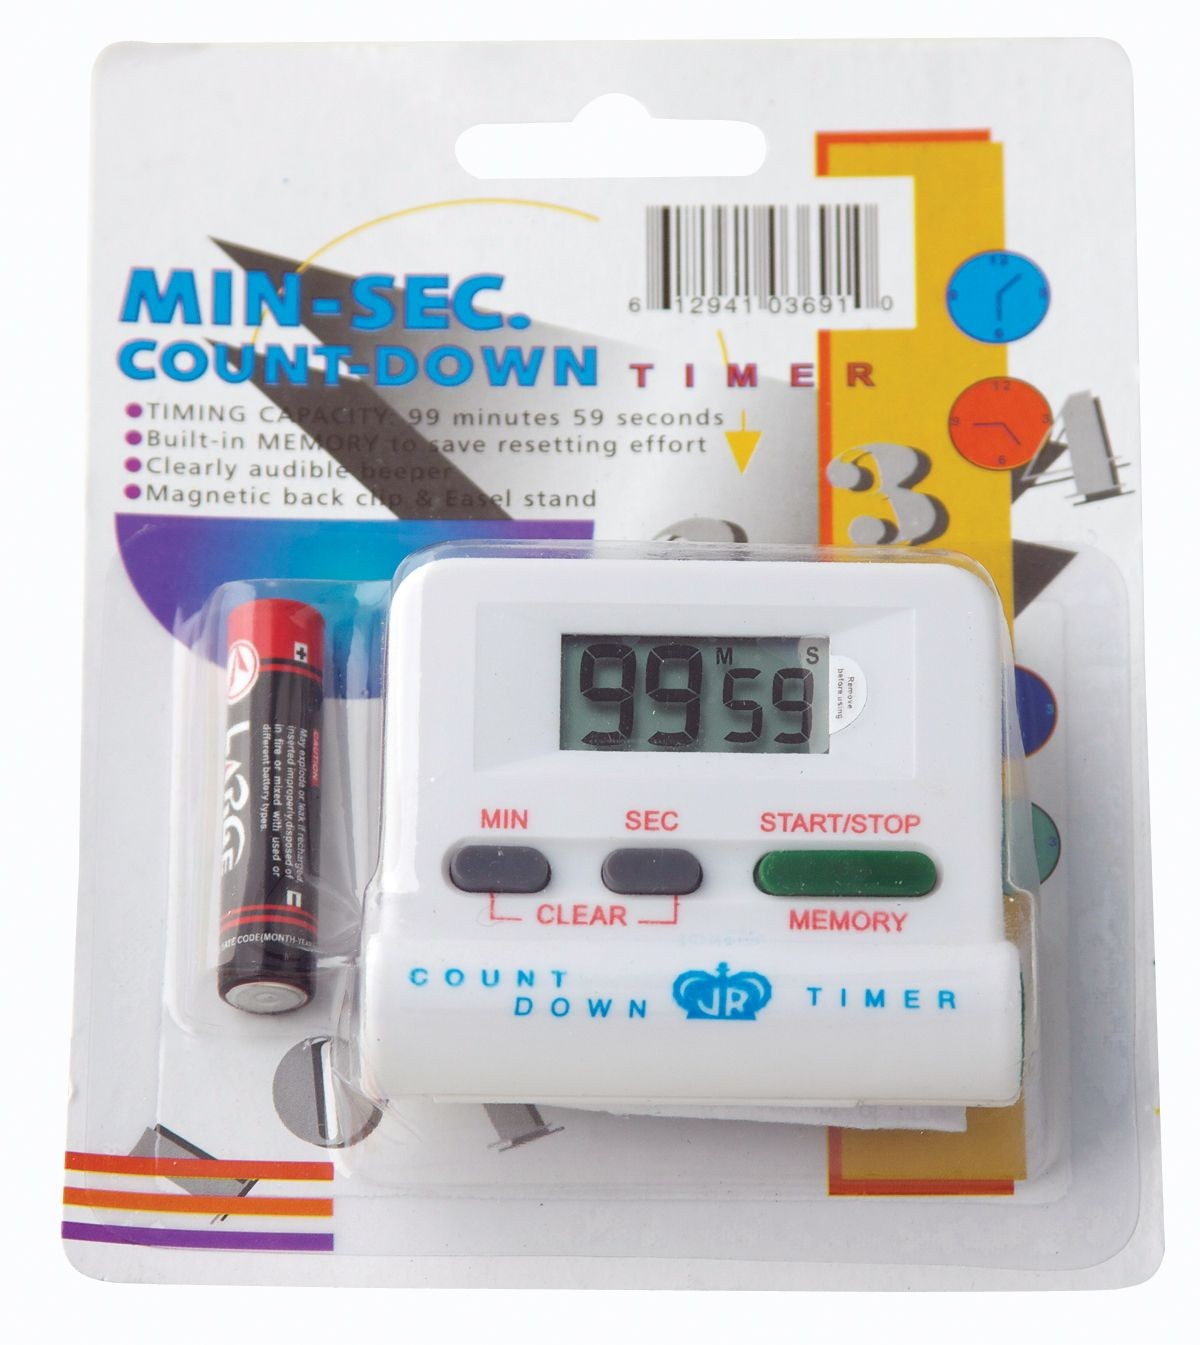 Loud-Beep Digital Electronic Timer - Up to 99 Minutes